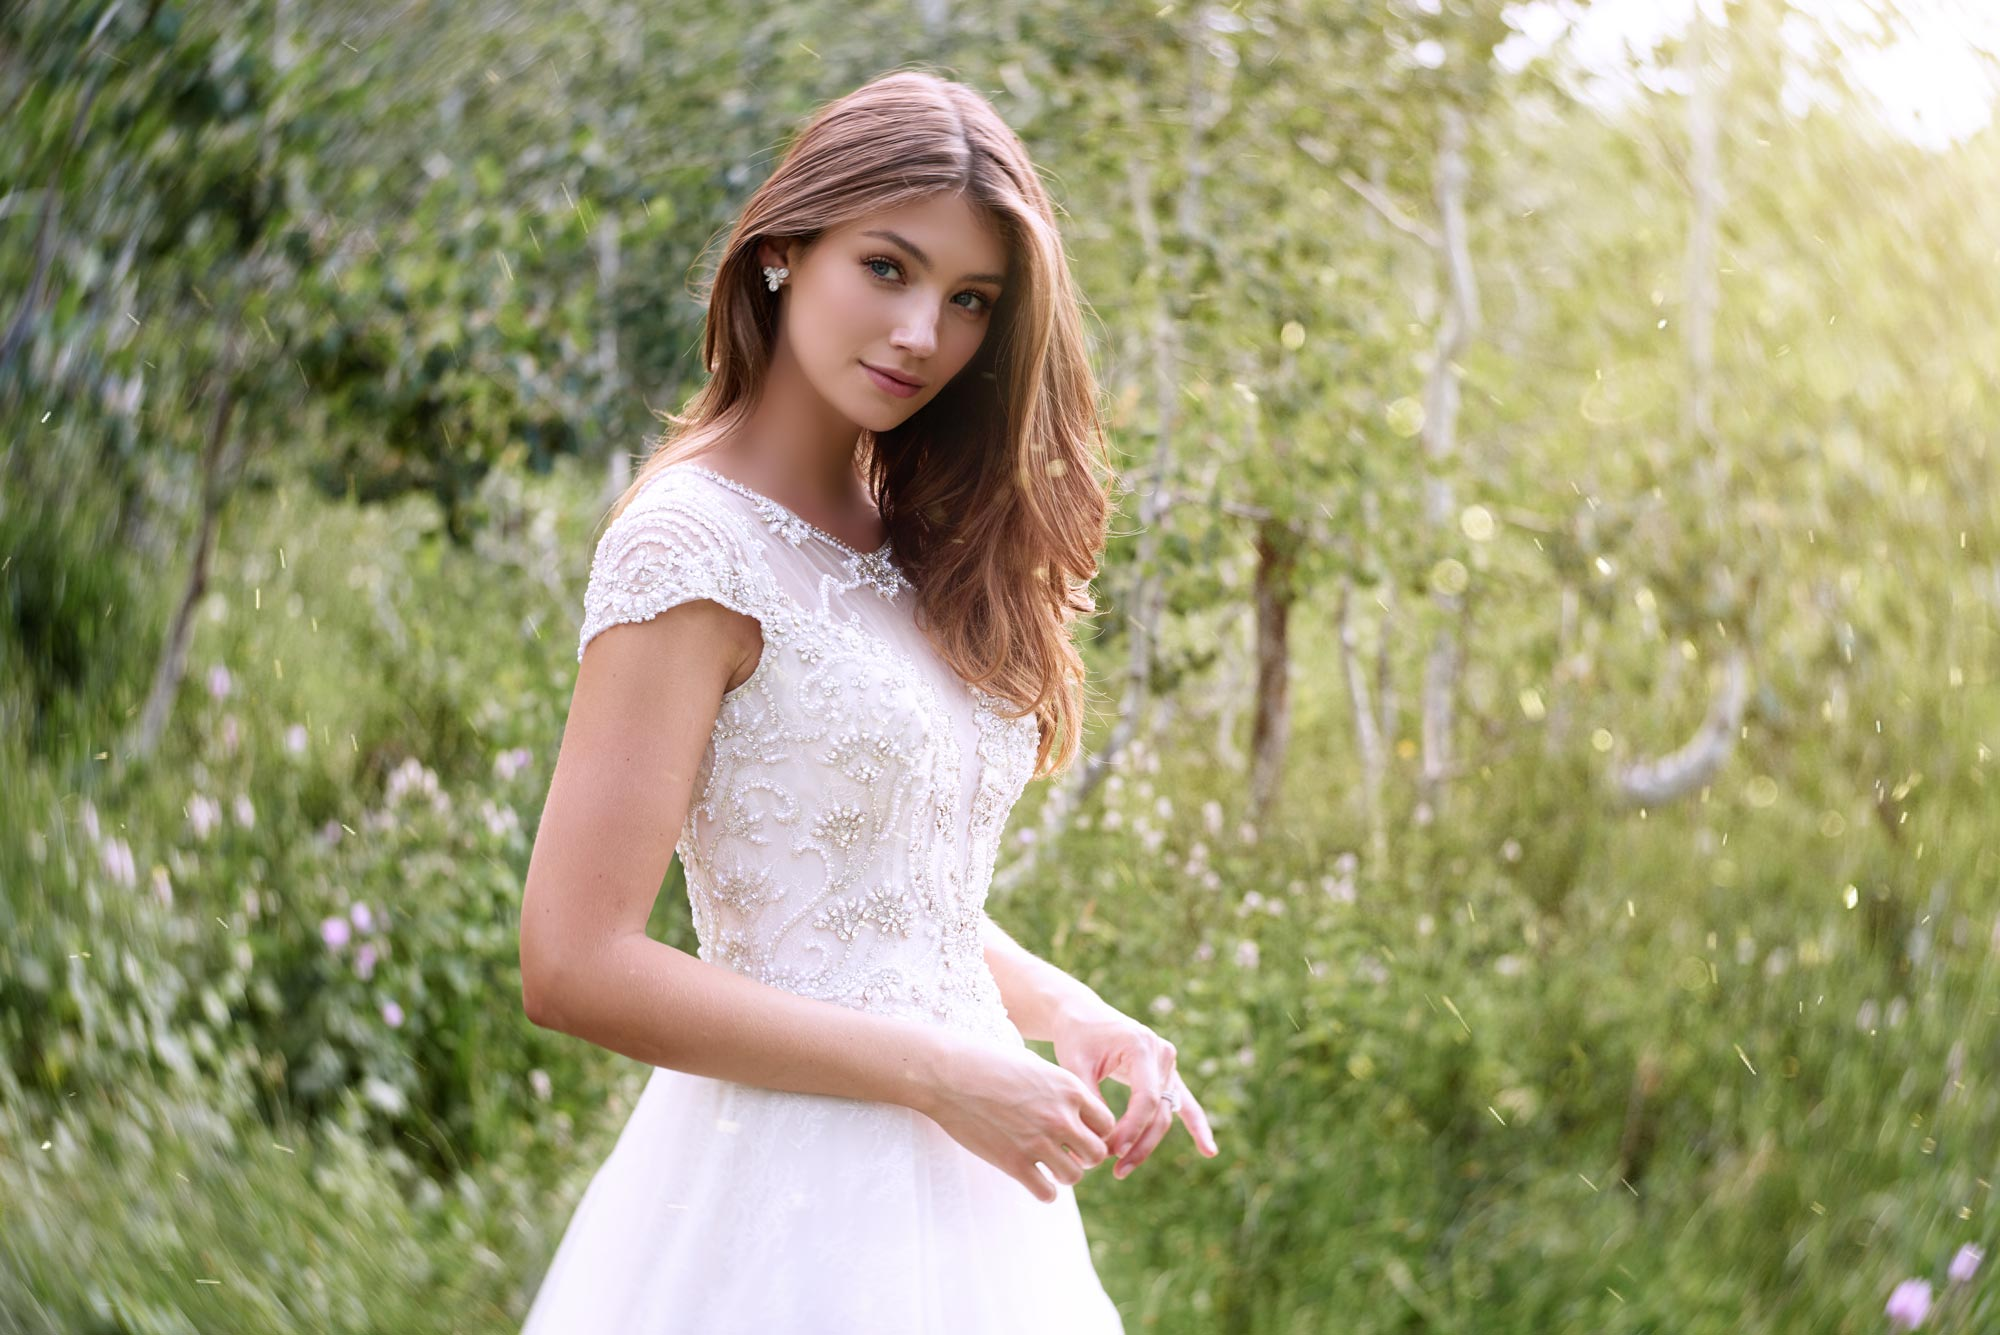 Brunette bride in field wearing short sleeve wedding dress